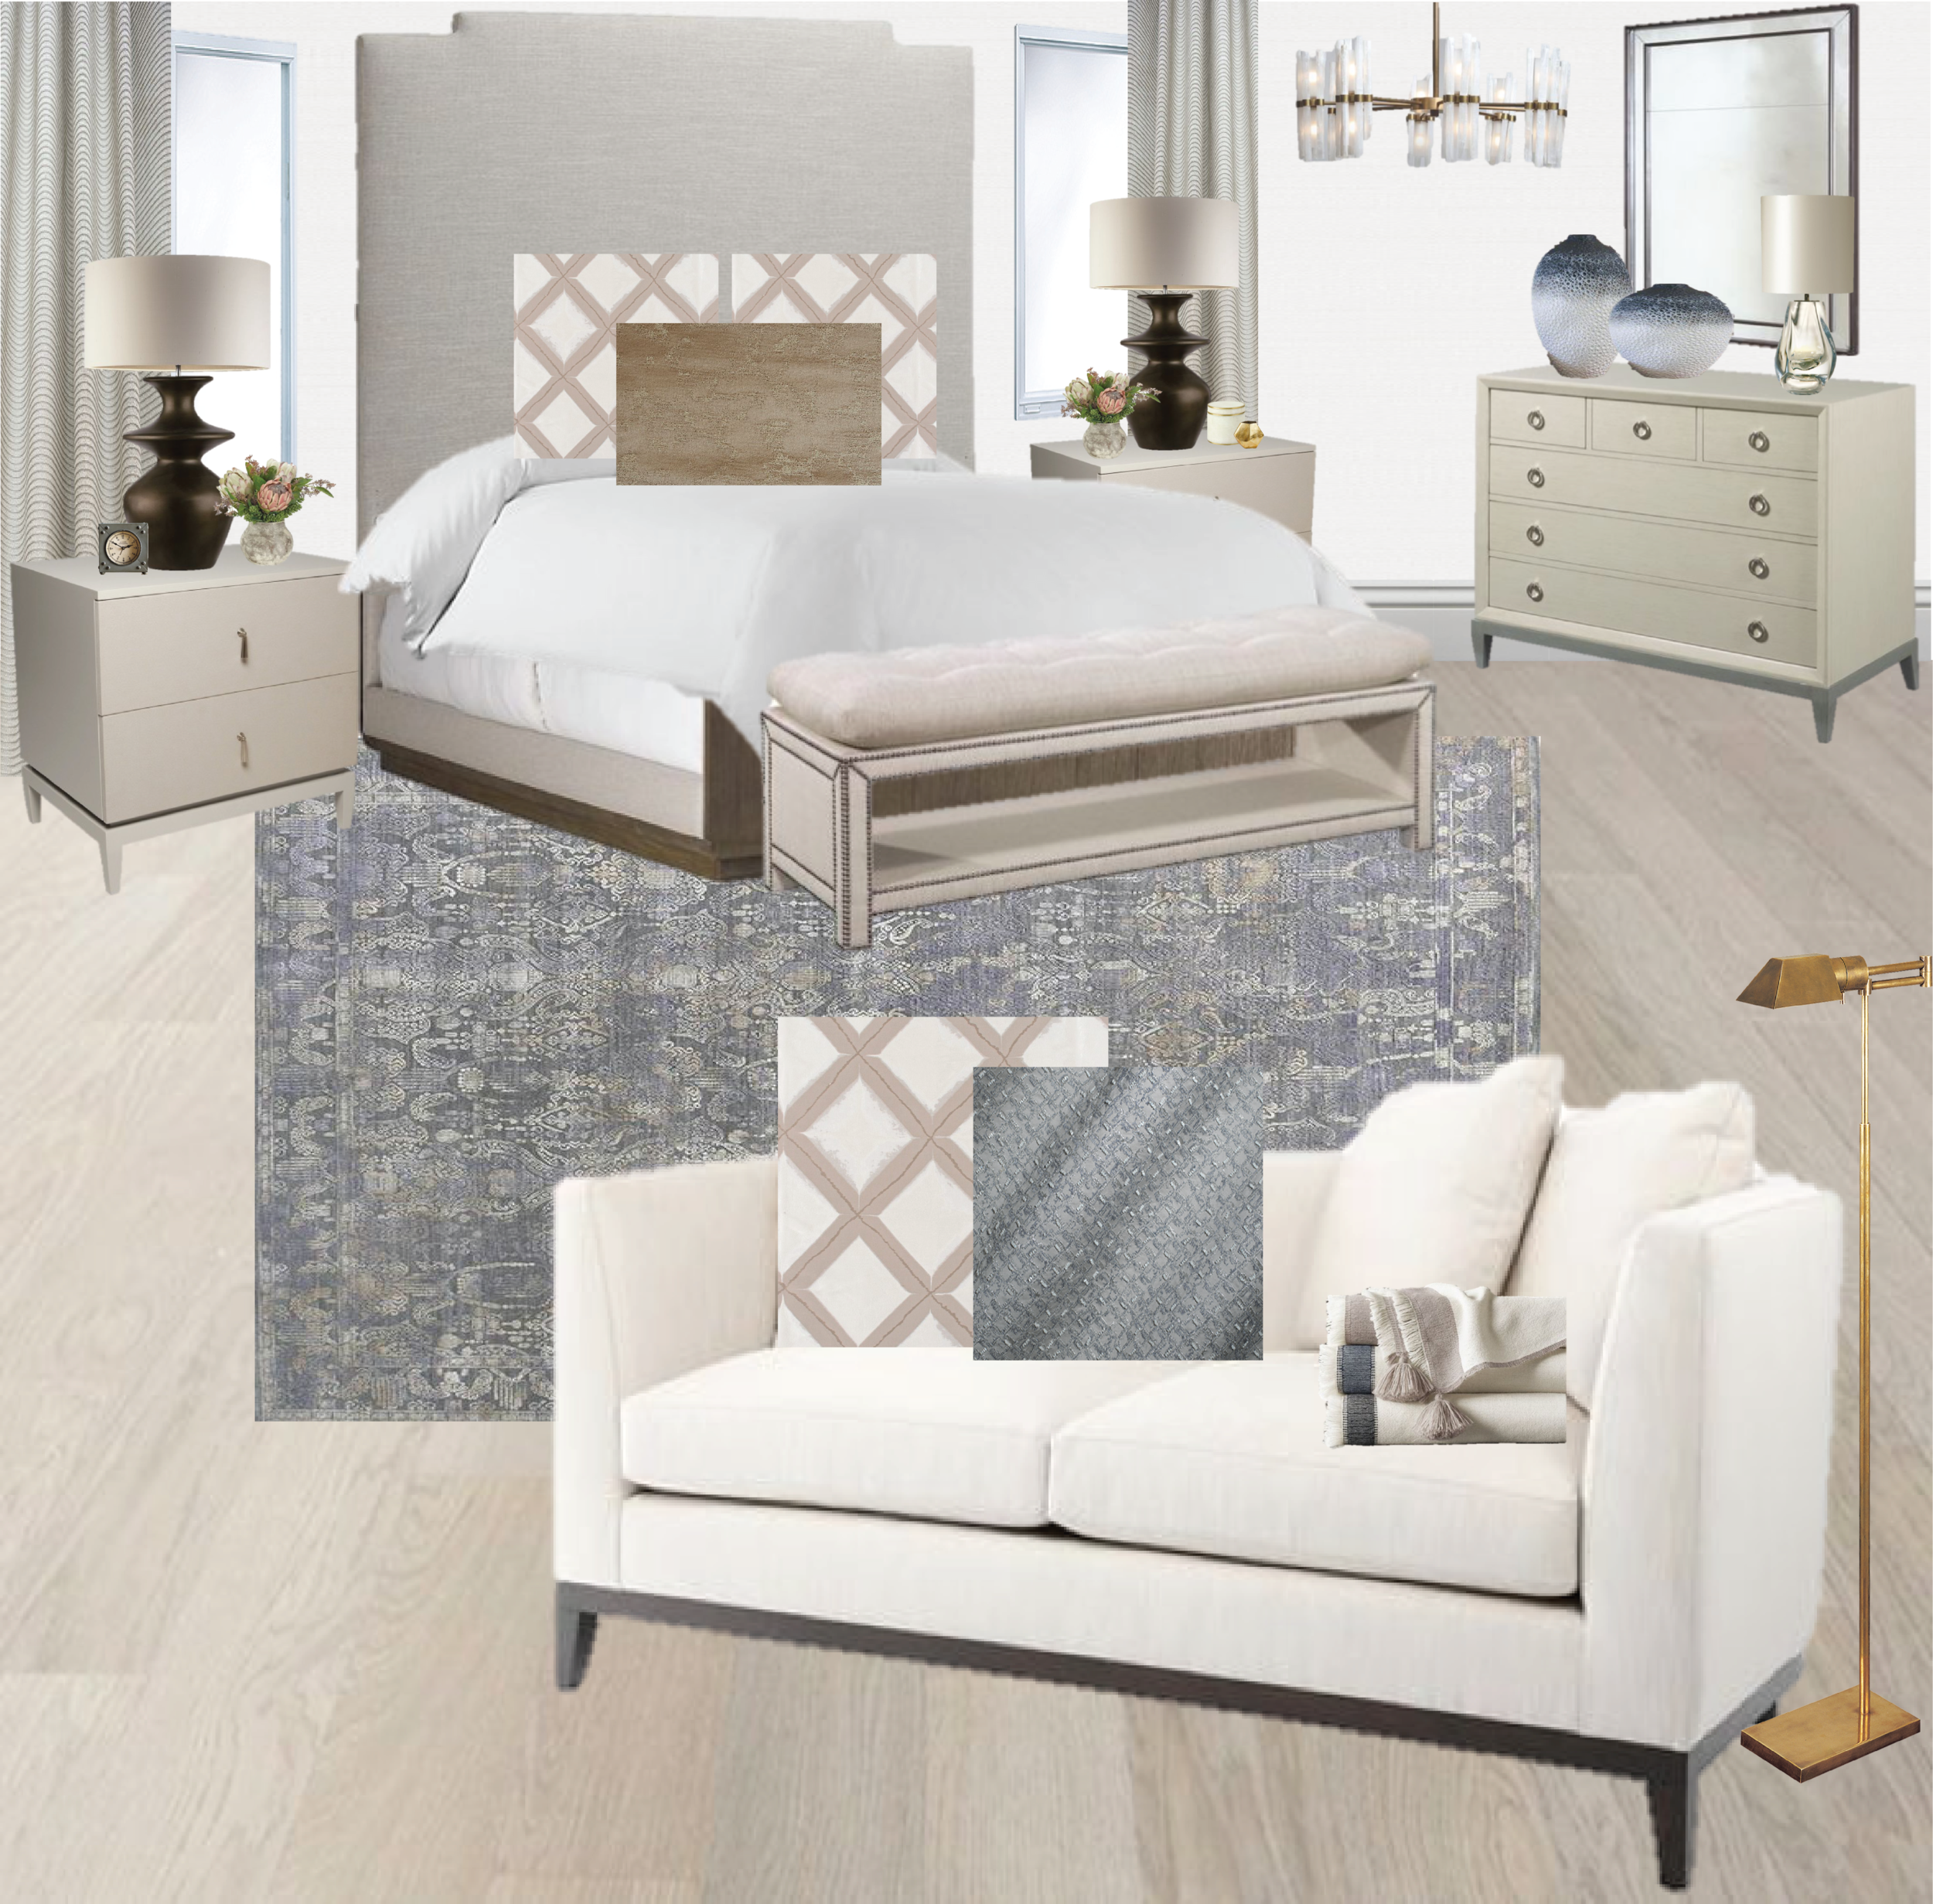 master bedroom ideas | white walls | white duvet | Bronze table lamps | brass table lamps | gray dresser | guest bedroom ideas | wood bed | blue rug | modern farmhouse kitchen | simply white Benjamin Moore | Shoji White Sherwin Williams | Bedroom Get the look | Tonal Bedroom By: Synonymous | New York City Interior Design Firm